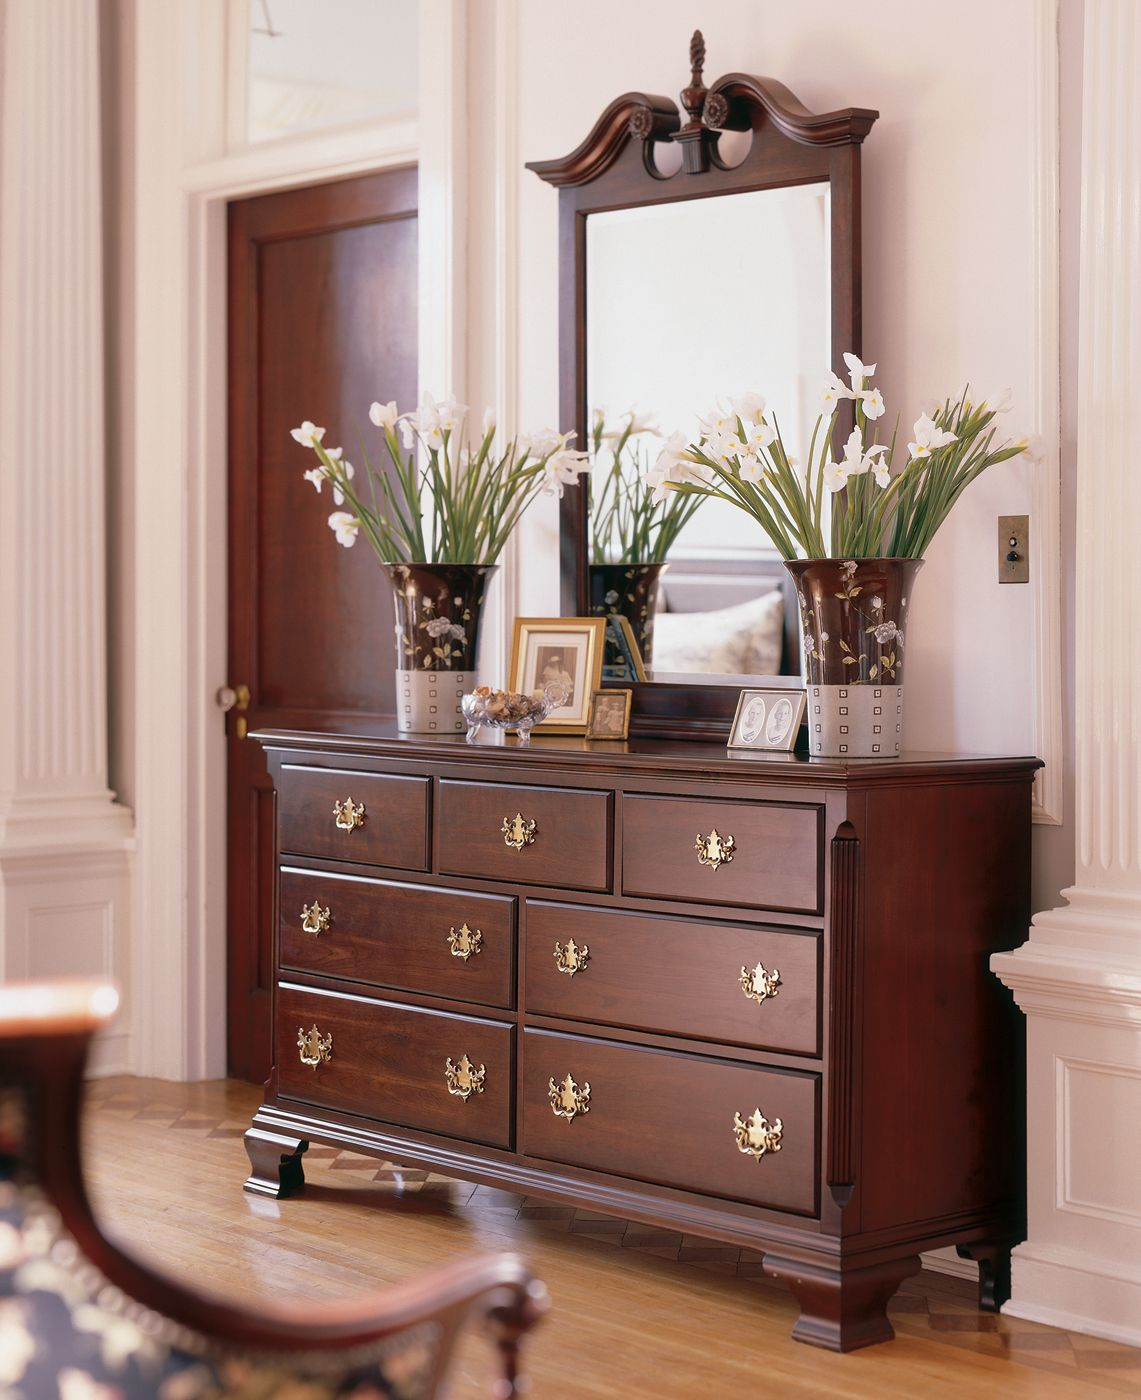 Shop kincaid furniture 60 110 carriage house double dresser at atg stores browse our dressers for Thomas kincaid bedroom furniture